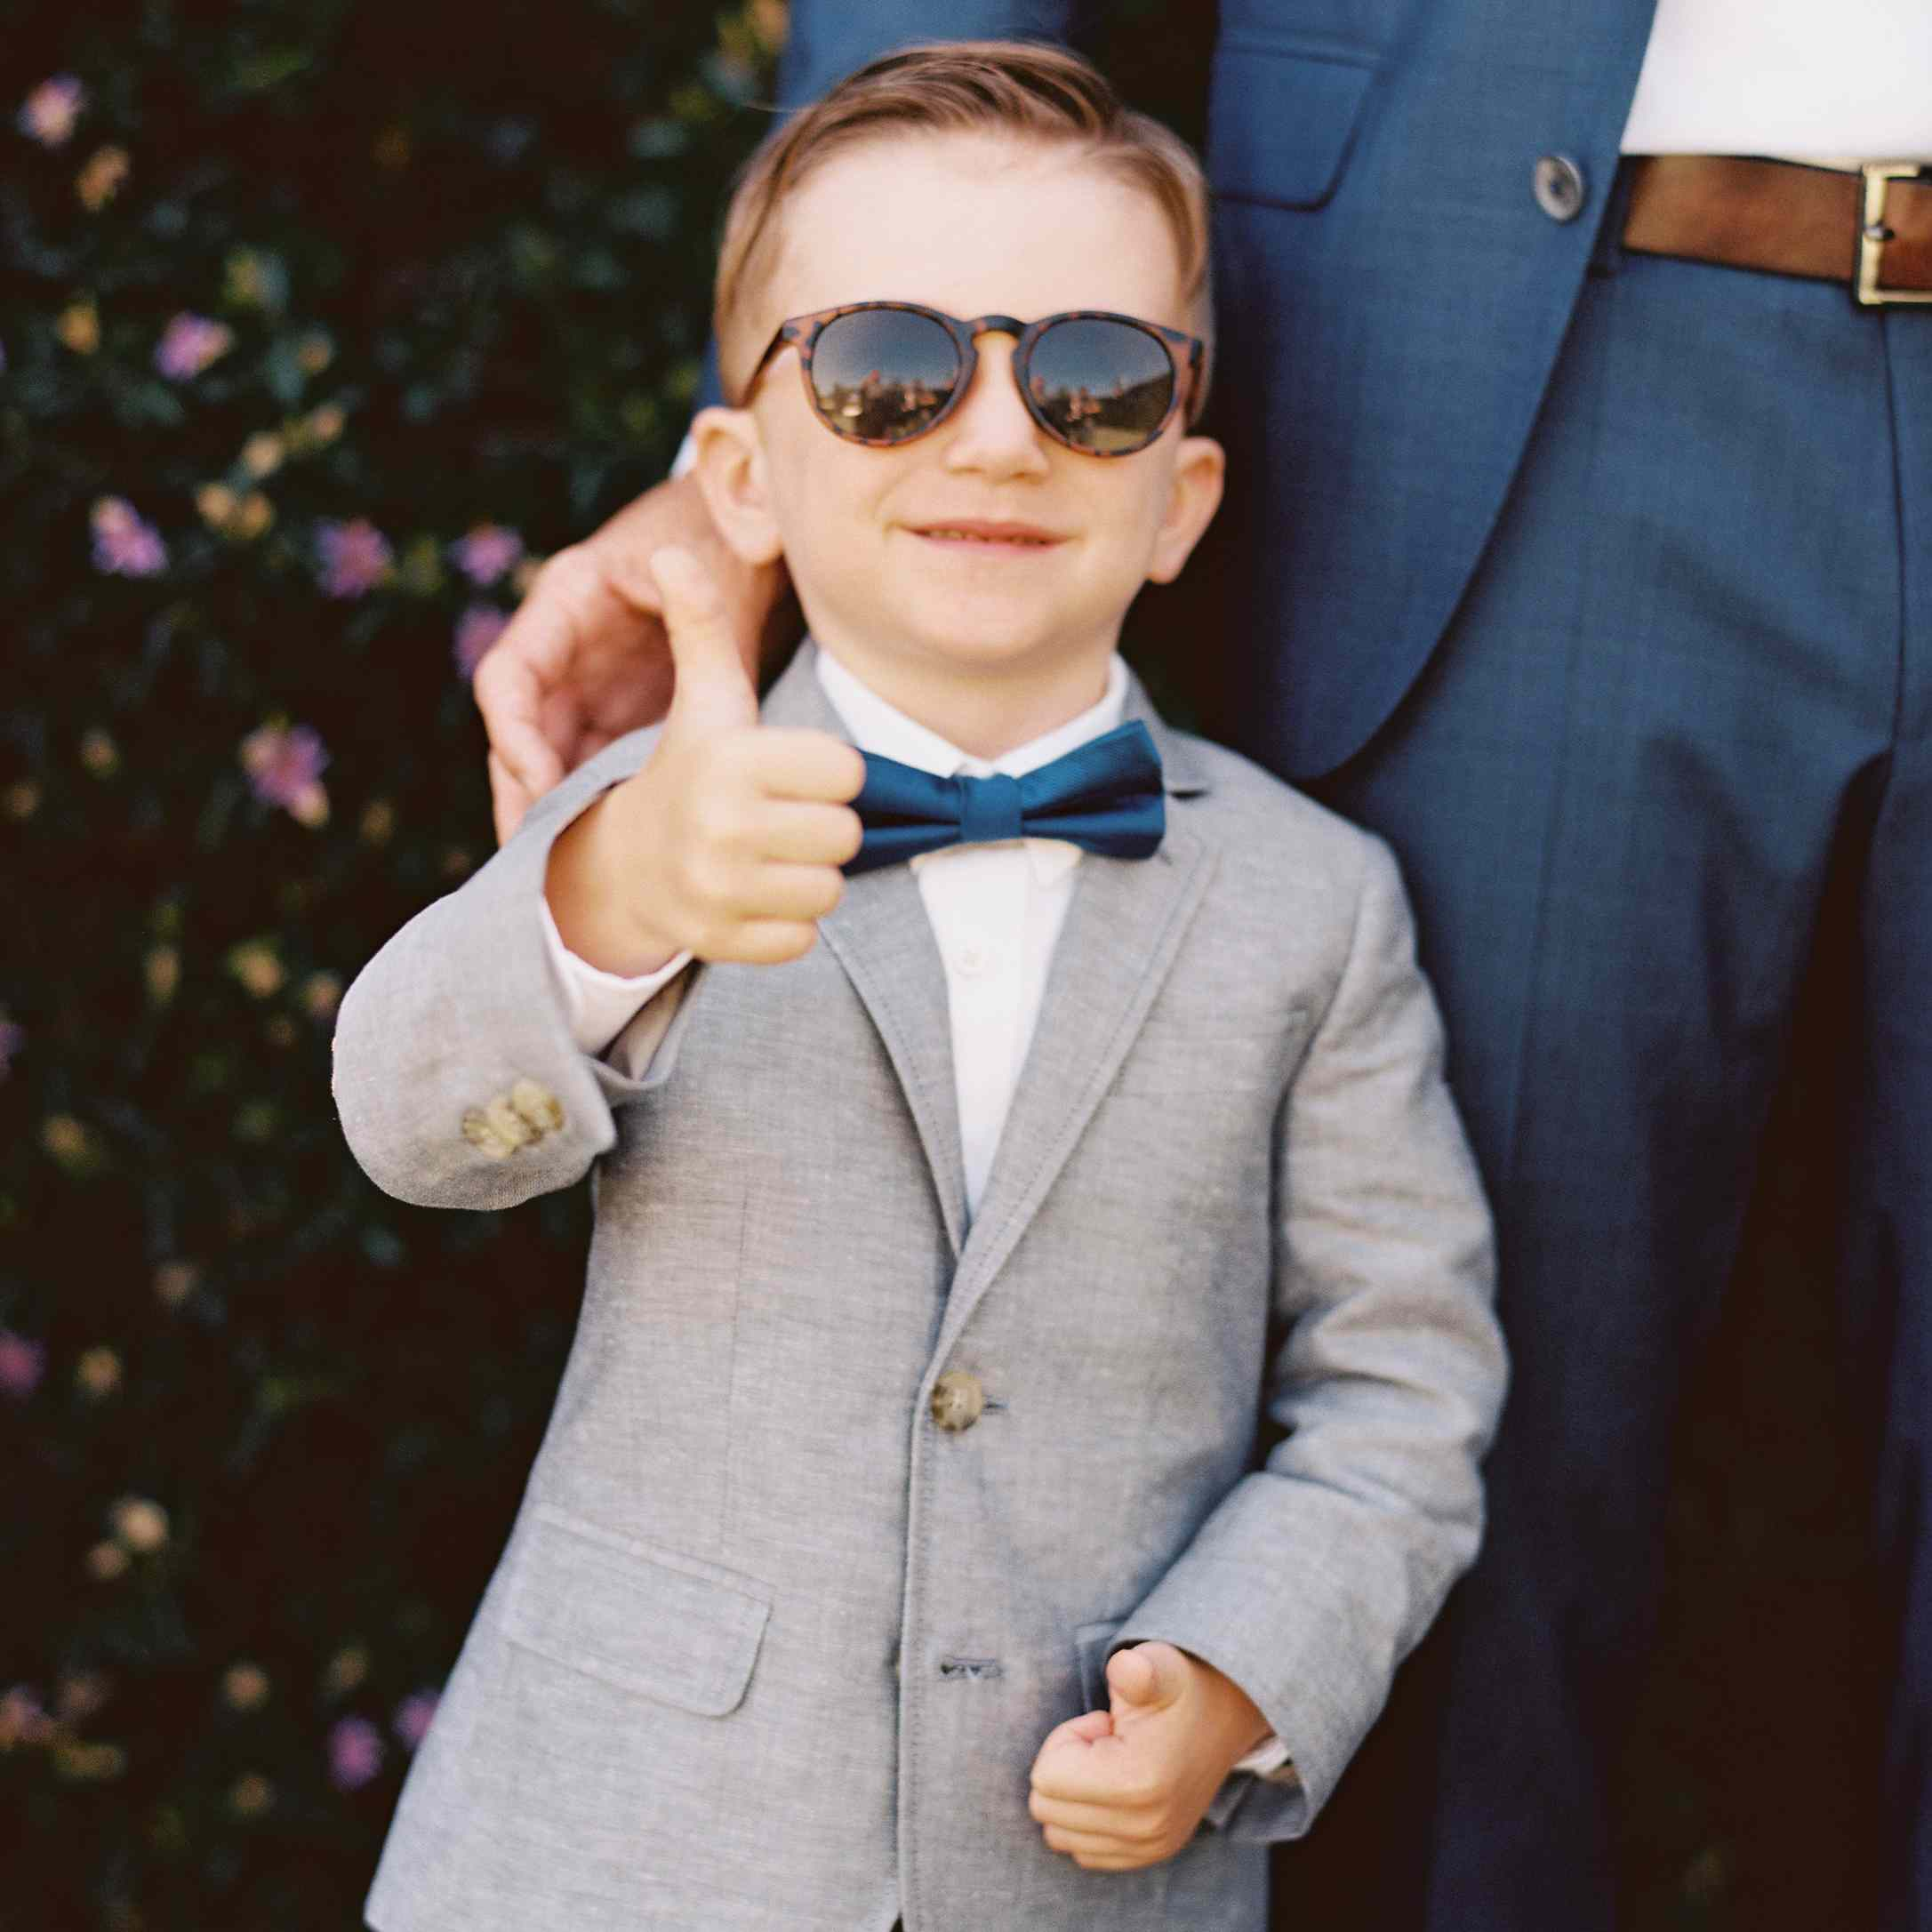 Ring bearer with sunglasses